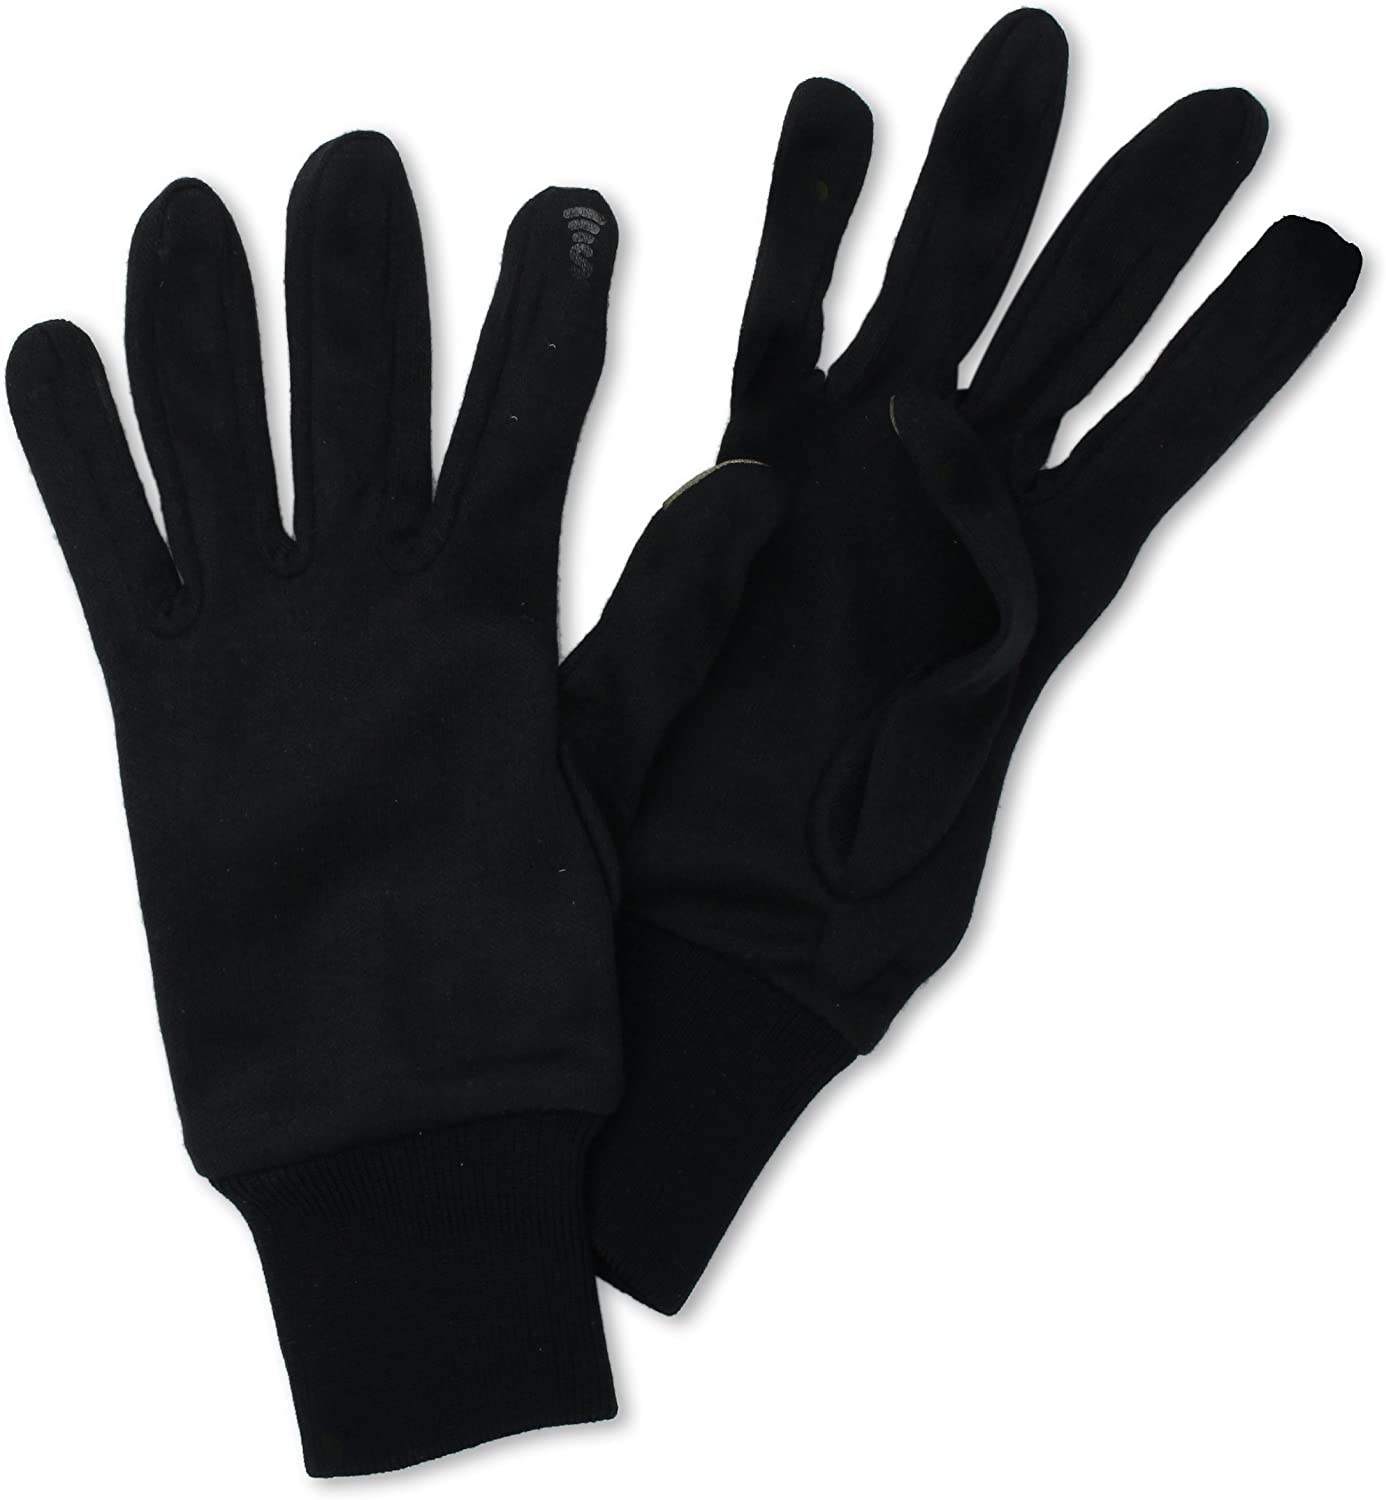 Seirus Innovation 2109 Deluxe Thermax Glove Liner with Soundtouch Touch Screen Technology